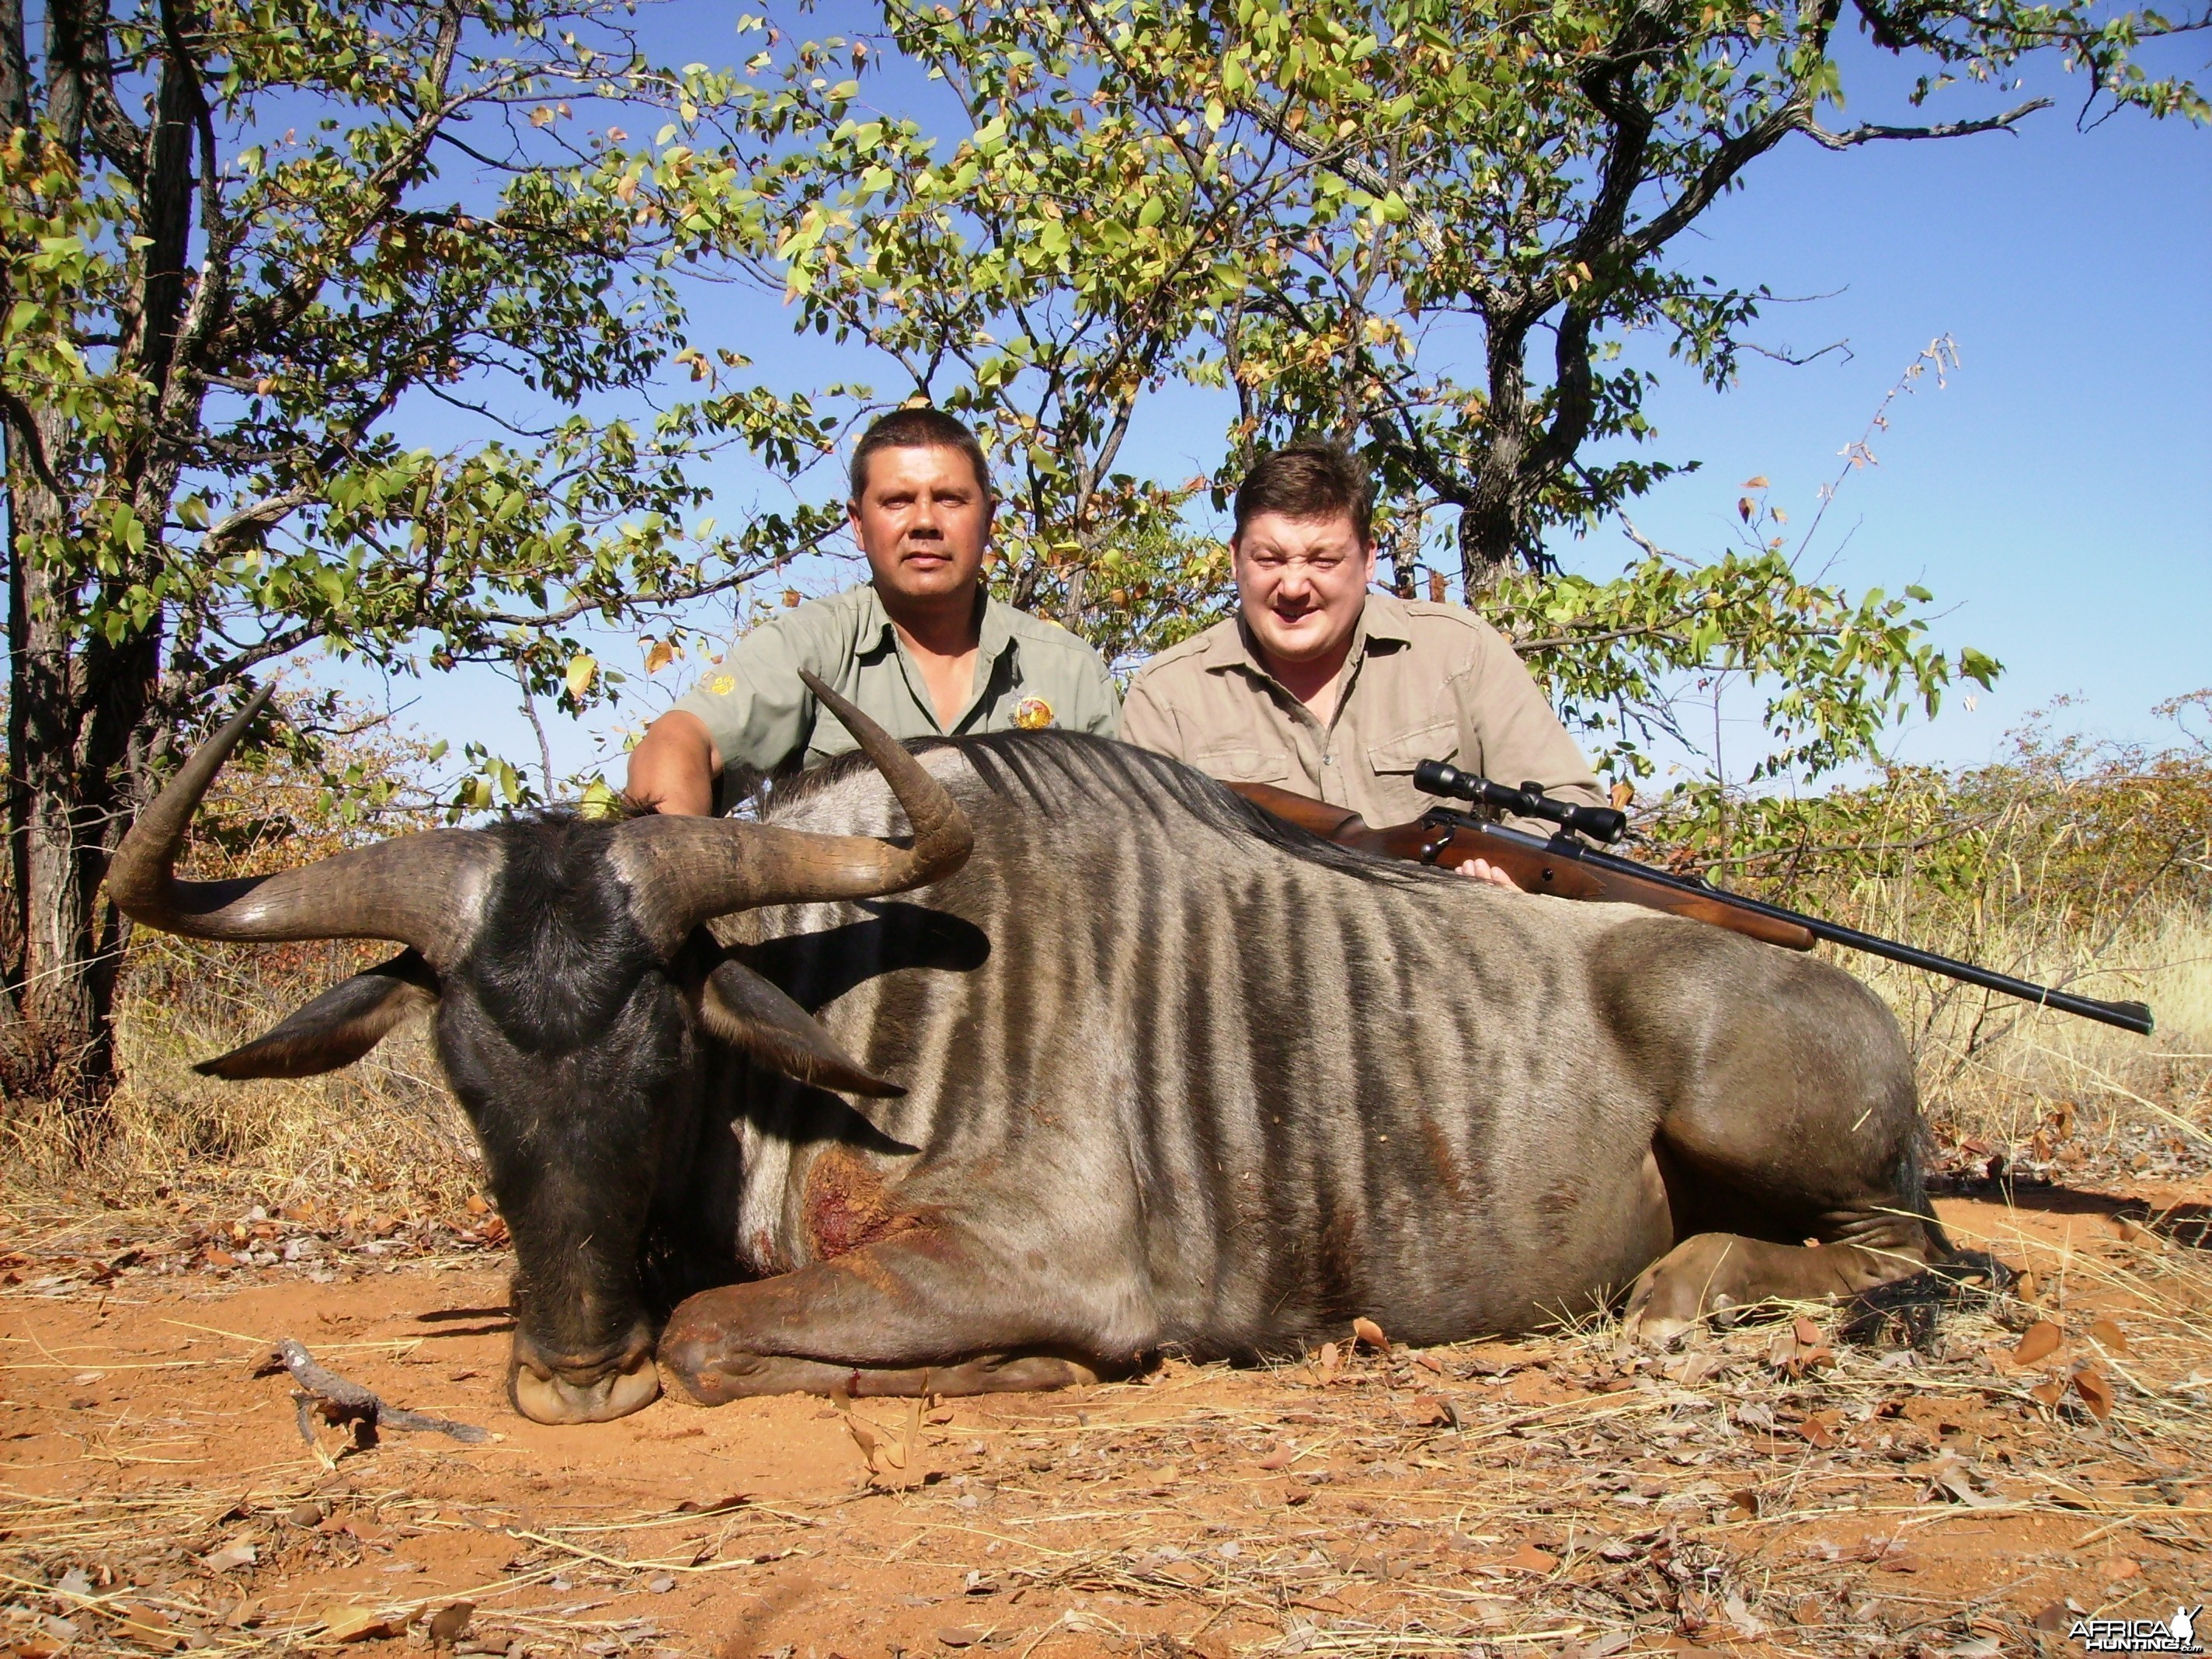 vadim with 31 inch blue wildebeest 2011